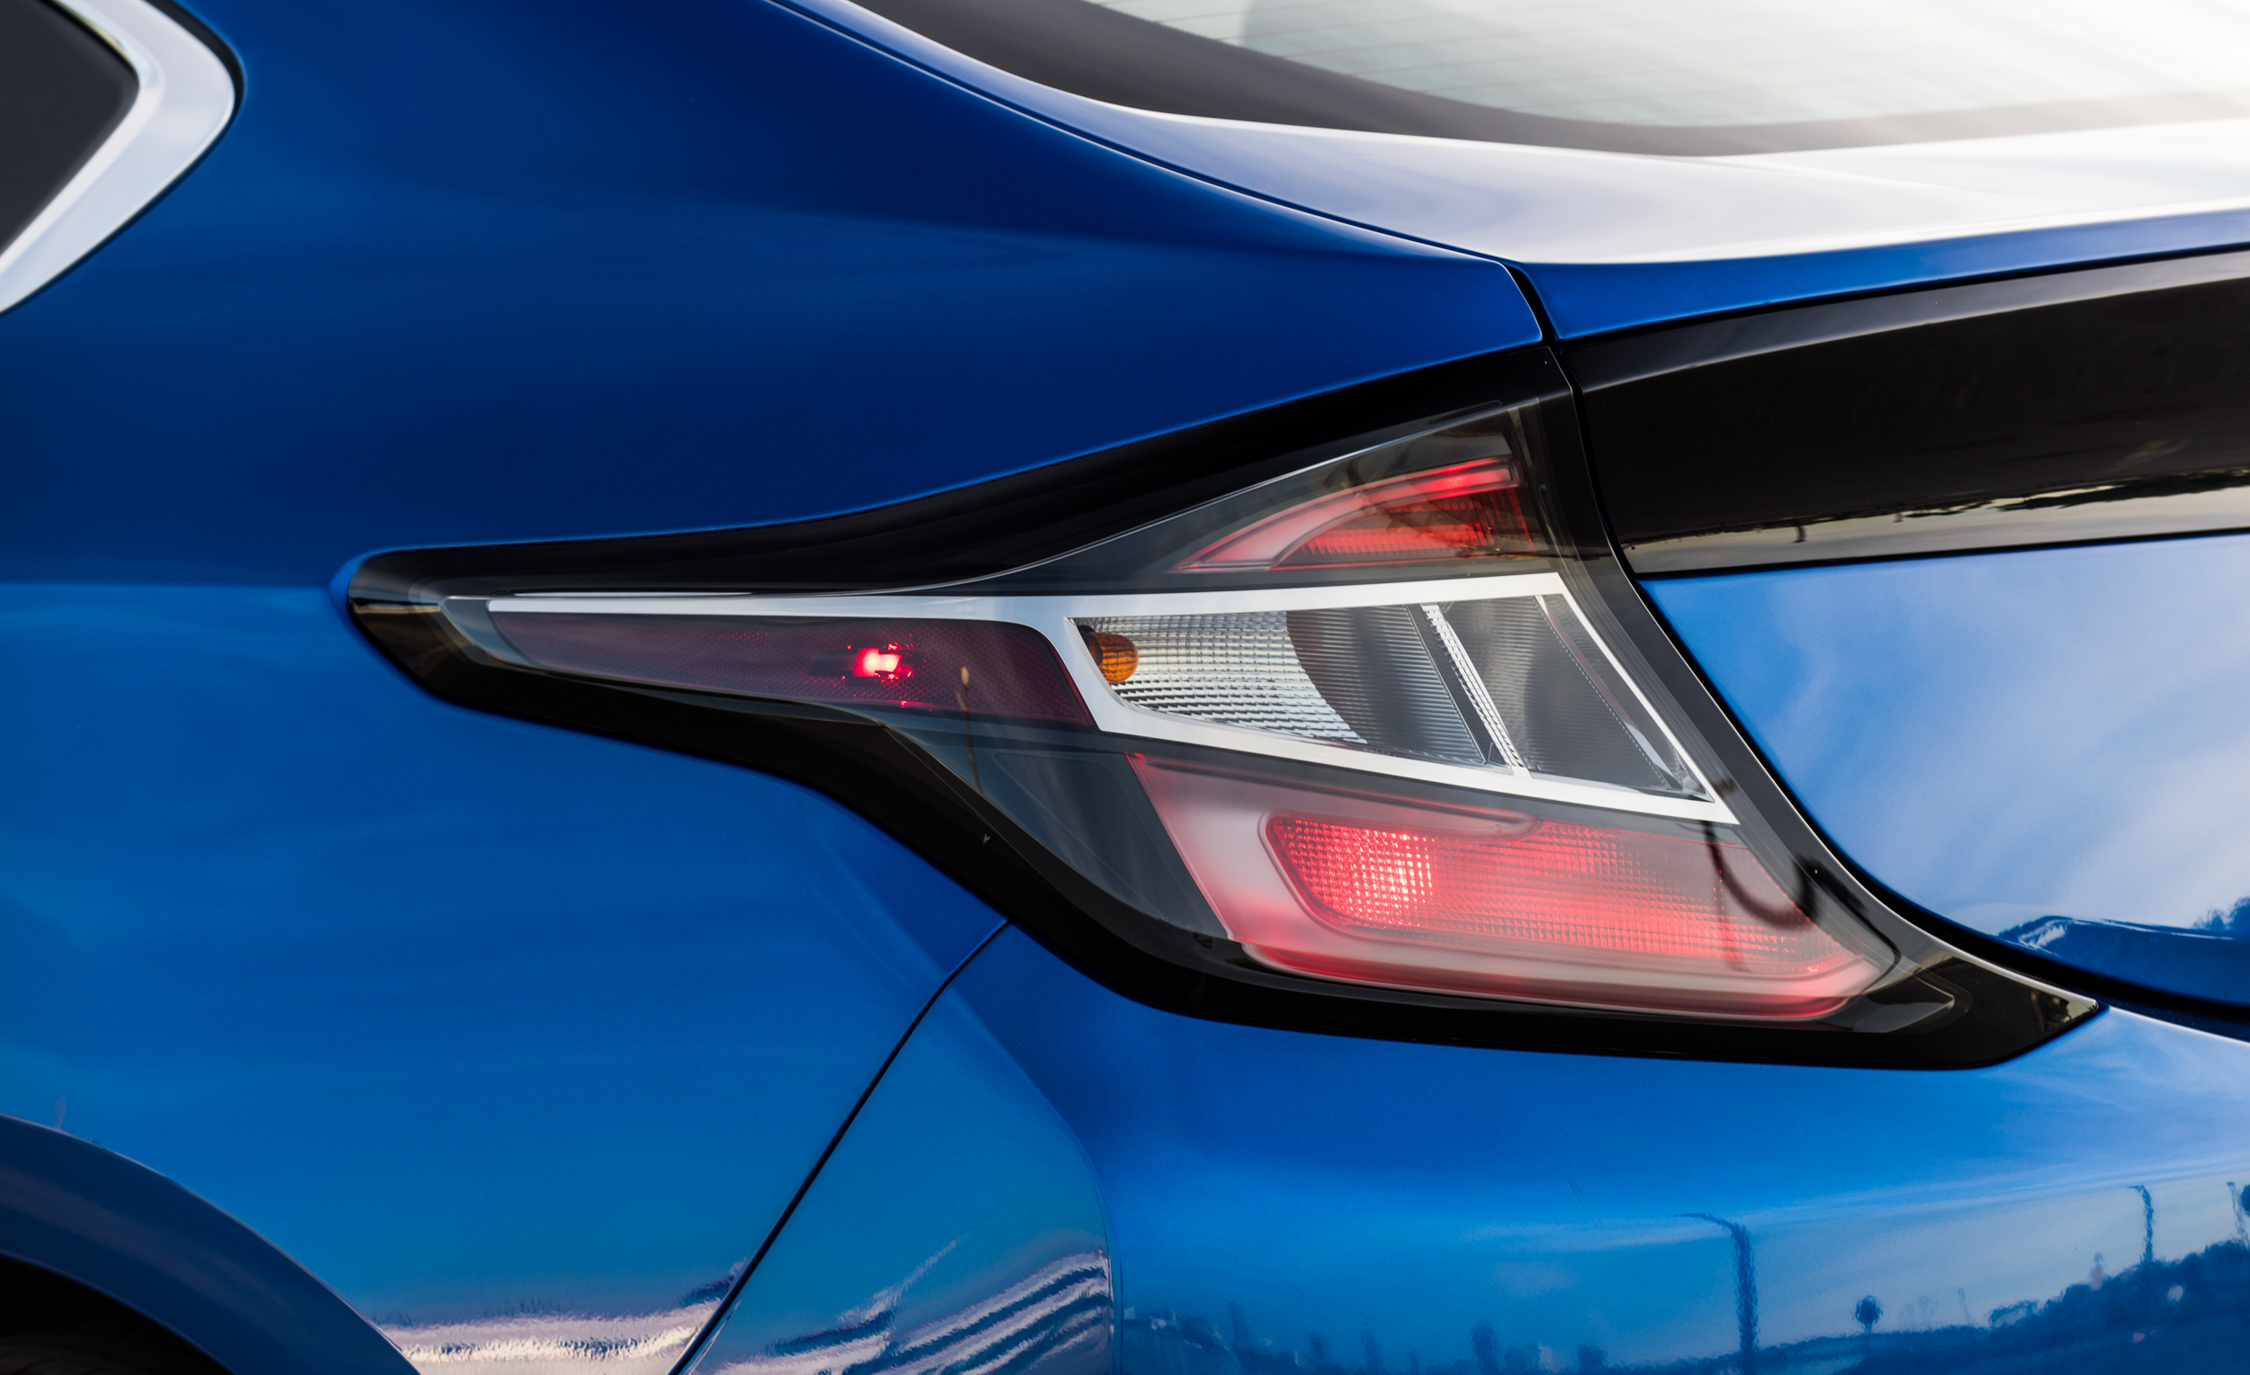 2017 Chevrolet Volt Exterior View Taillight (View 12 of 16)